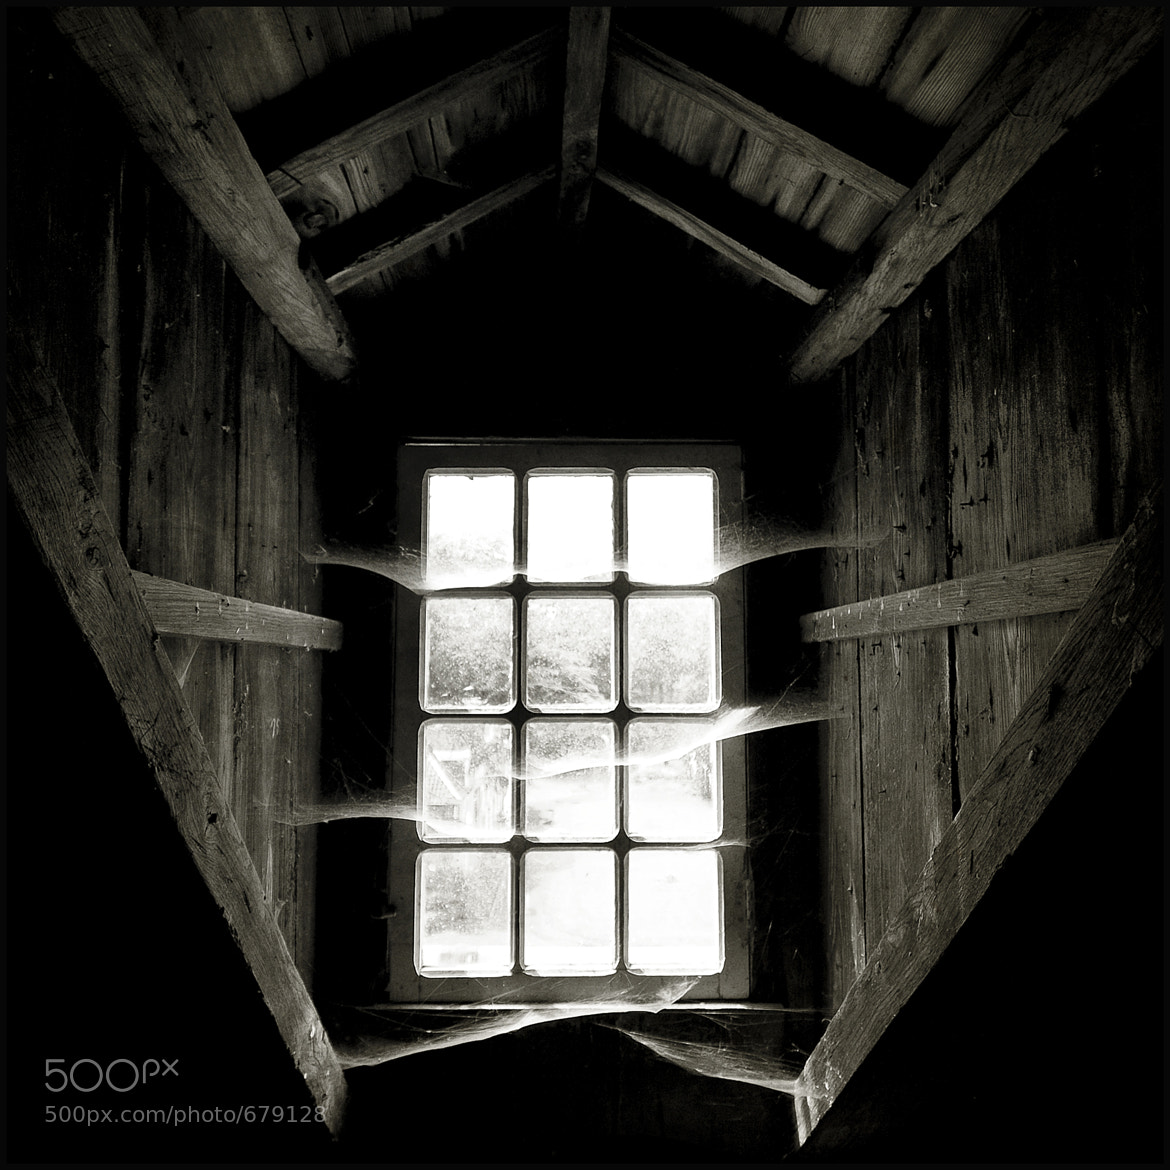 Photograph Attic Window by Christophe Regnaud on 500px